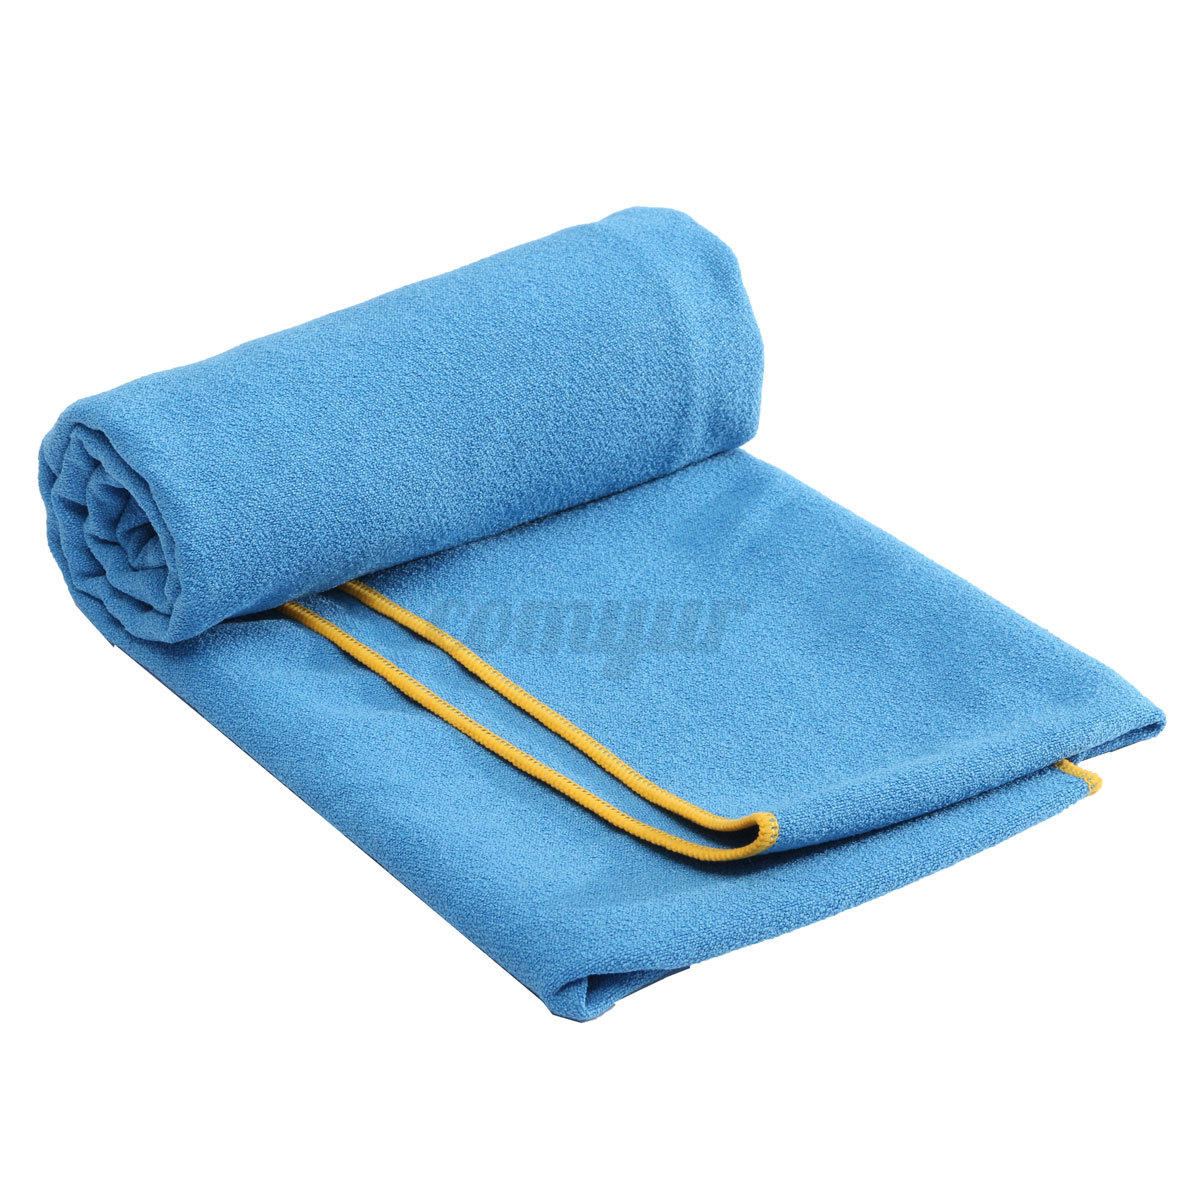 Yoga Towel Uk: Large Size Microfiber Yoga Mat Towel Non-Slip Blanket Pad